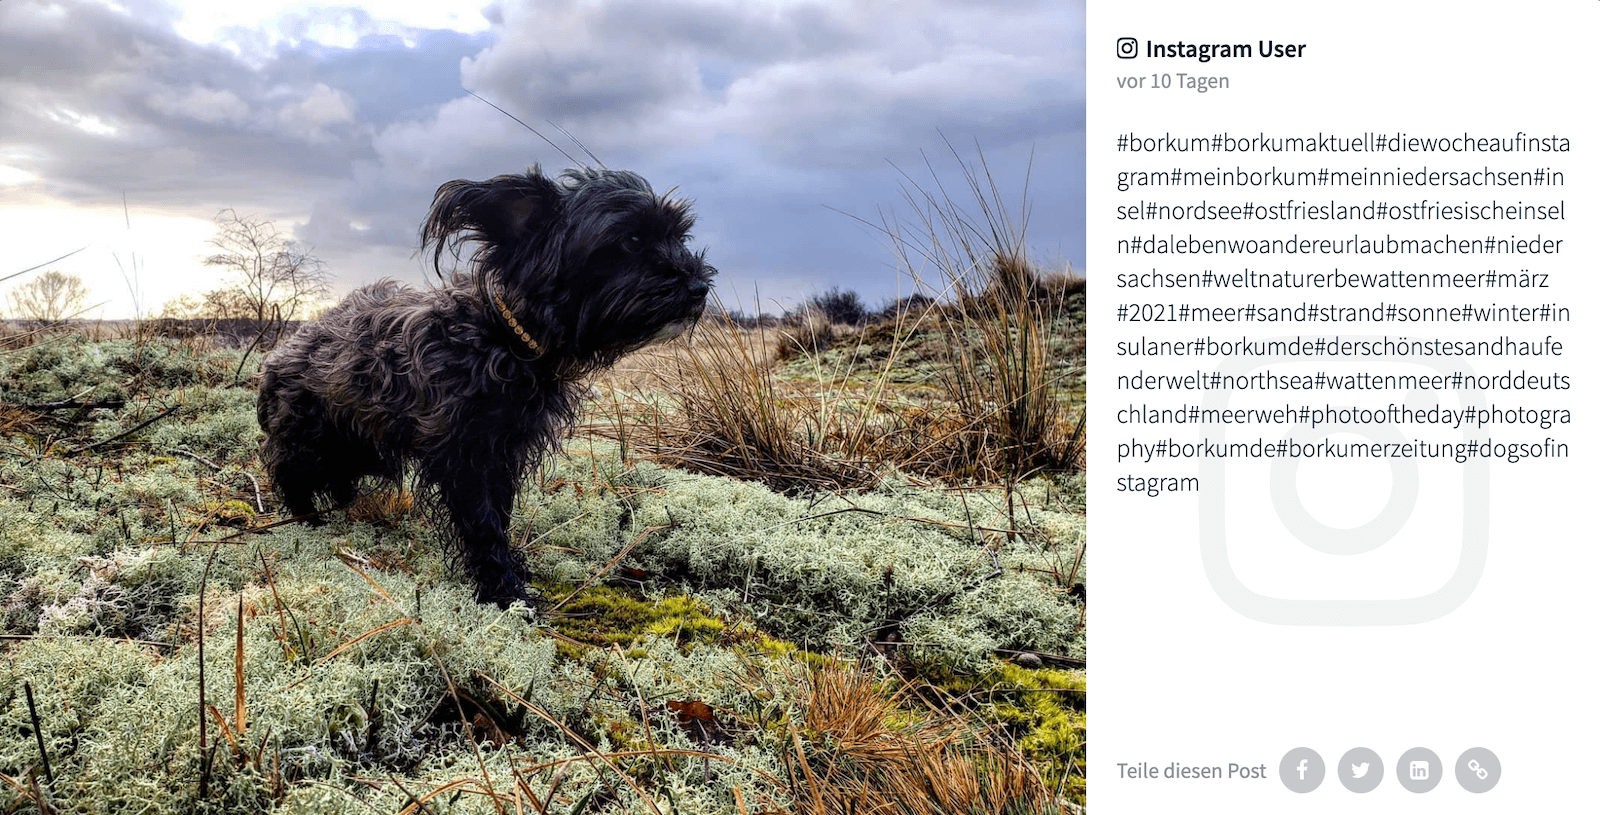 Instagram post by user inseldini1975 shows a small and scruffy black dog, slightly windswept, standing among lichen and greens on the dunes and looking off into the distance. One of the many hashtags used in the caption is #MeinBorkum.